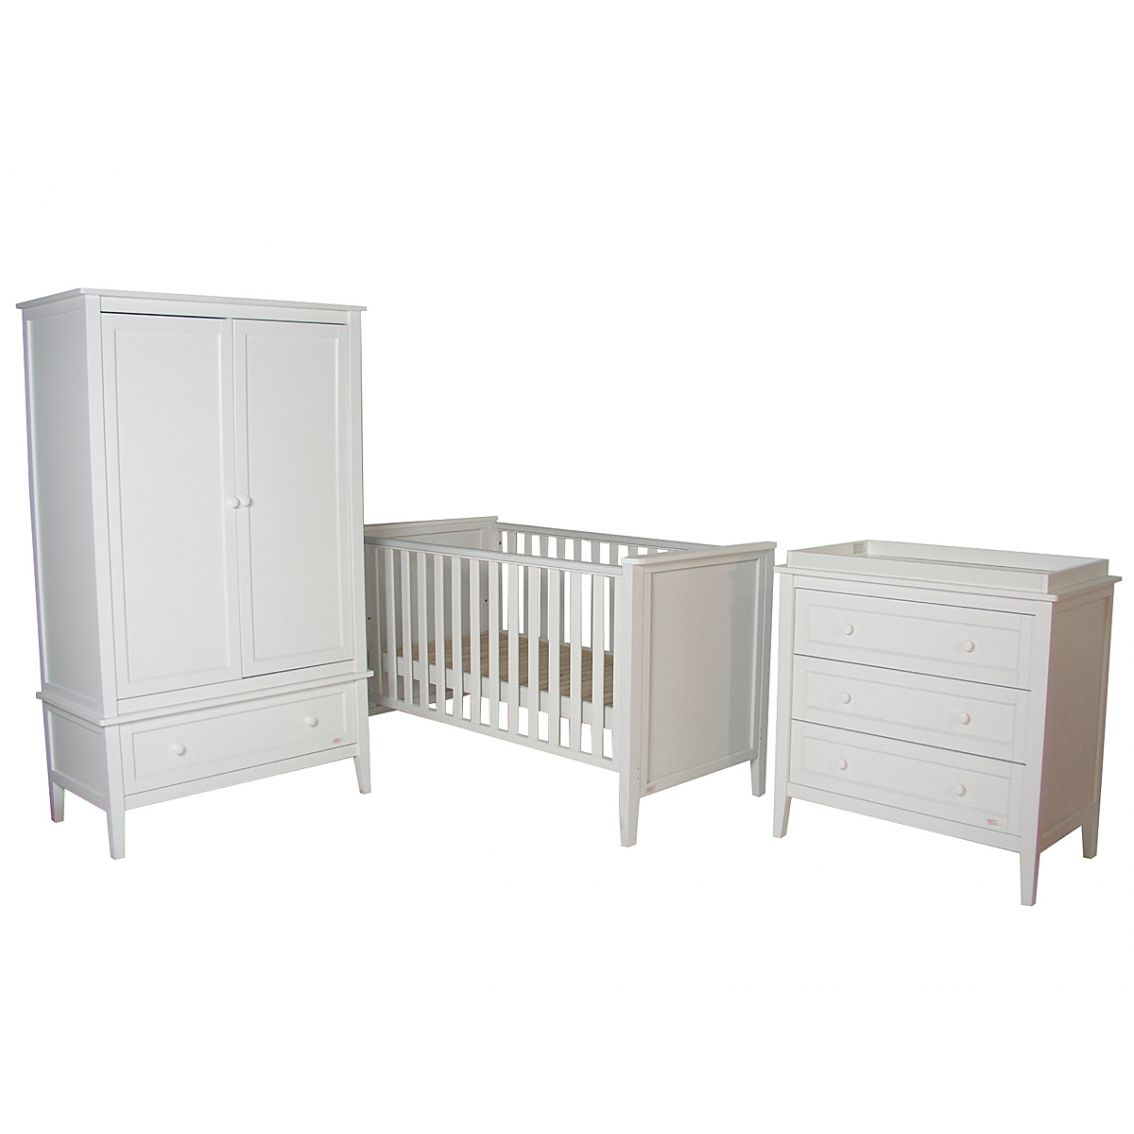 Troll riga nursery furniture room set for Furniture riga